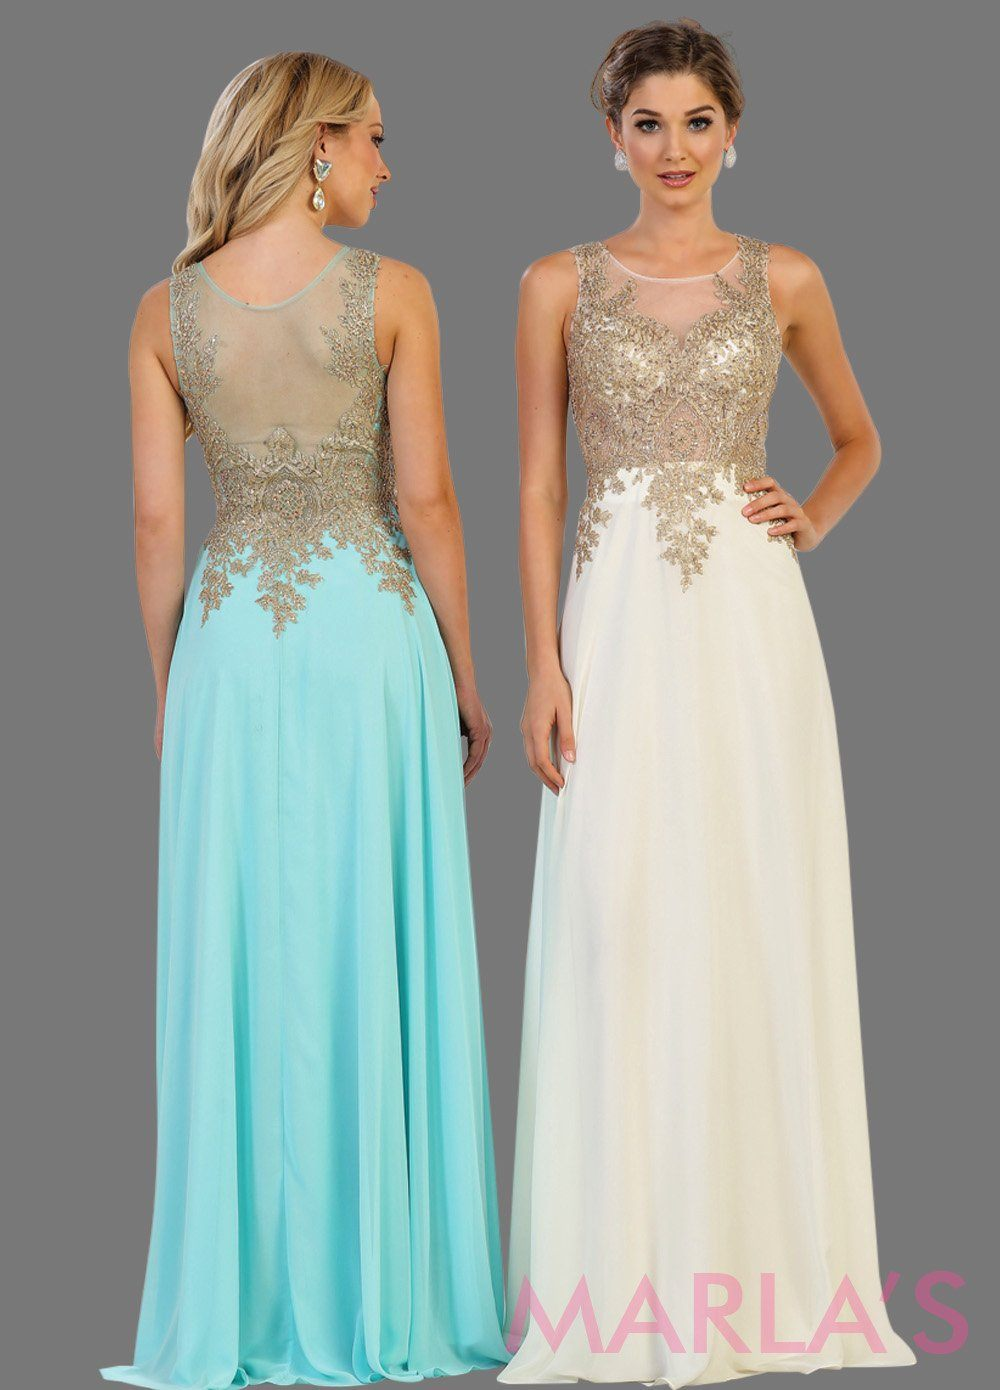 Modern Party Dresses For Wedding Guest Crest - All Wedding Dresses ...